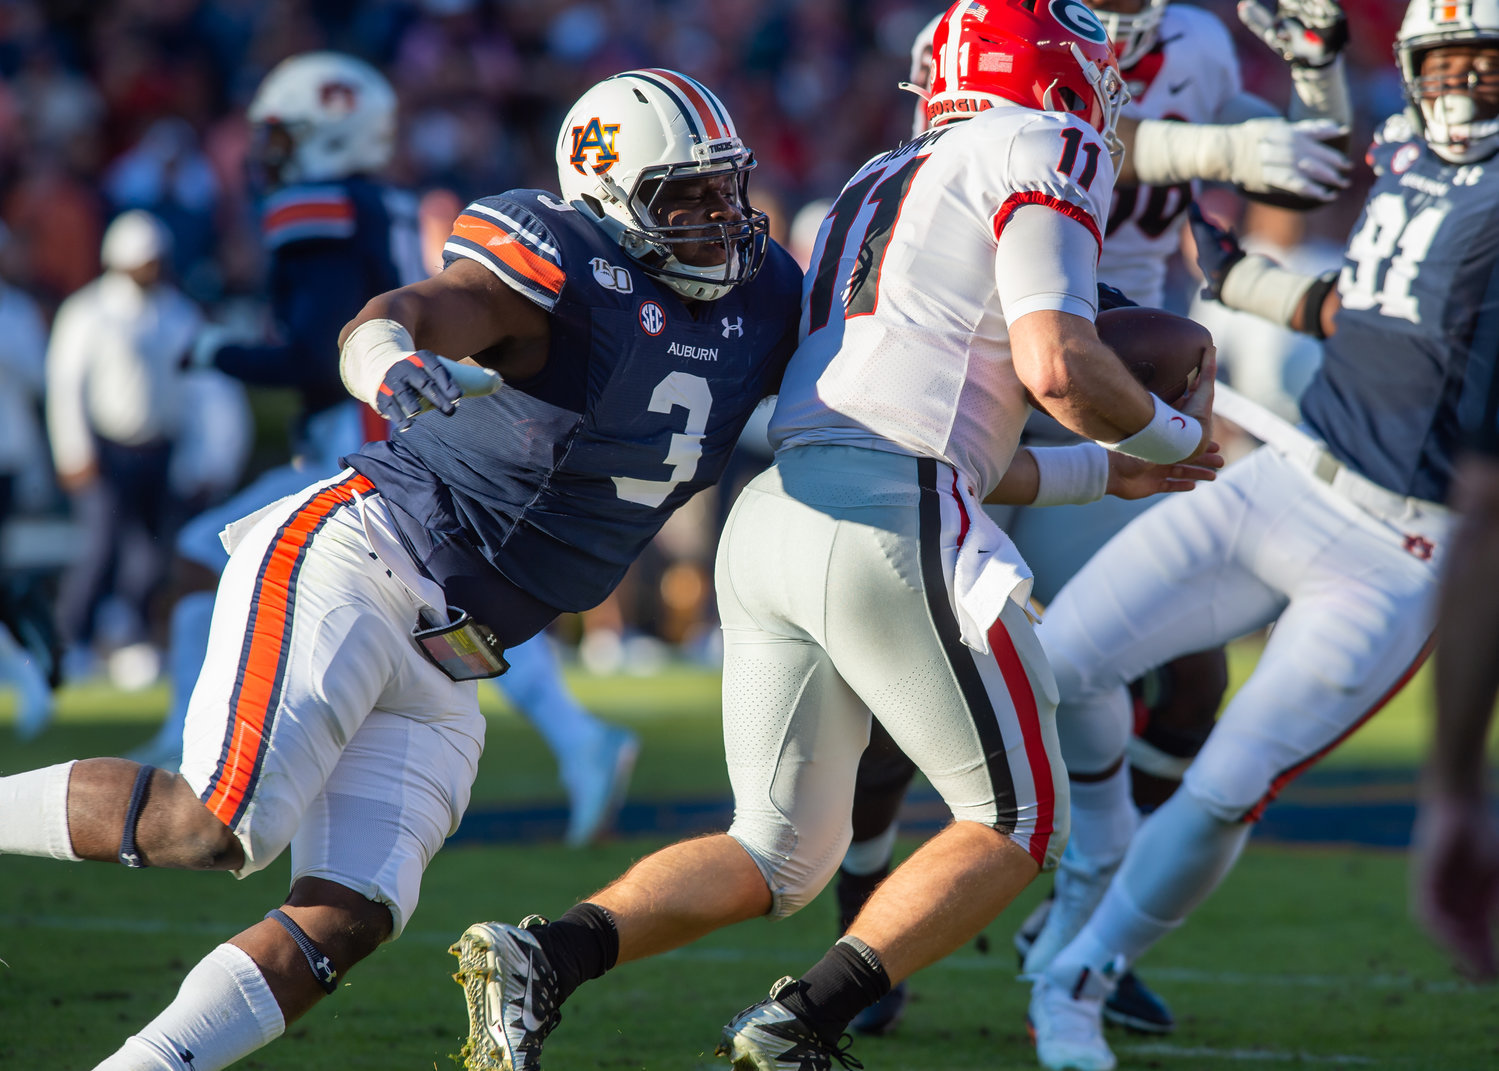 Auburn Tigers defensive end Marlon Davidson (3) sacks Georgia Bulldogs quarterback Jake Fromm (11) during the first half of Saturday's game, at Jordan-Hare Stadium in Auburn,, AL. Daily Mountain Eagle -  Jeff Johnsey